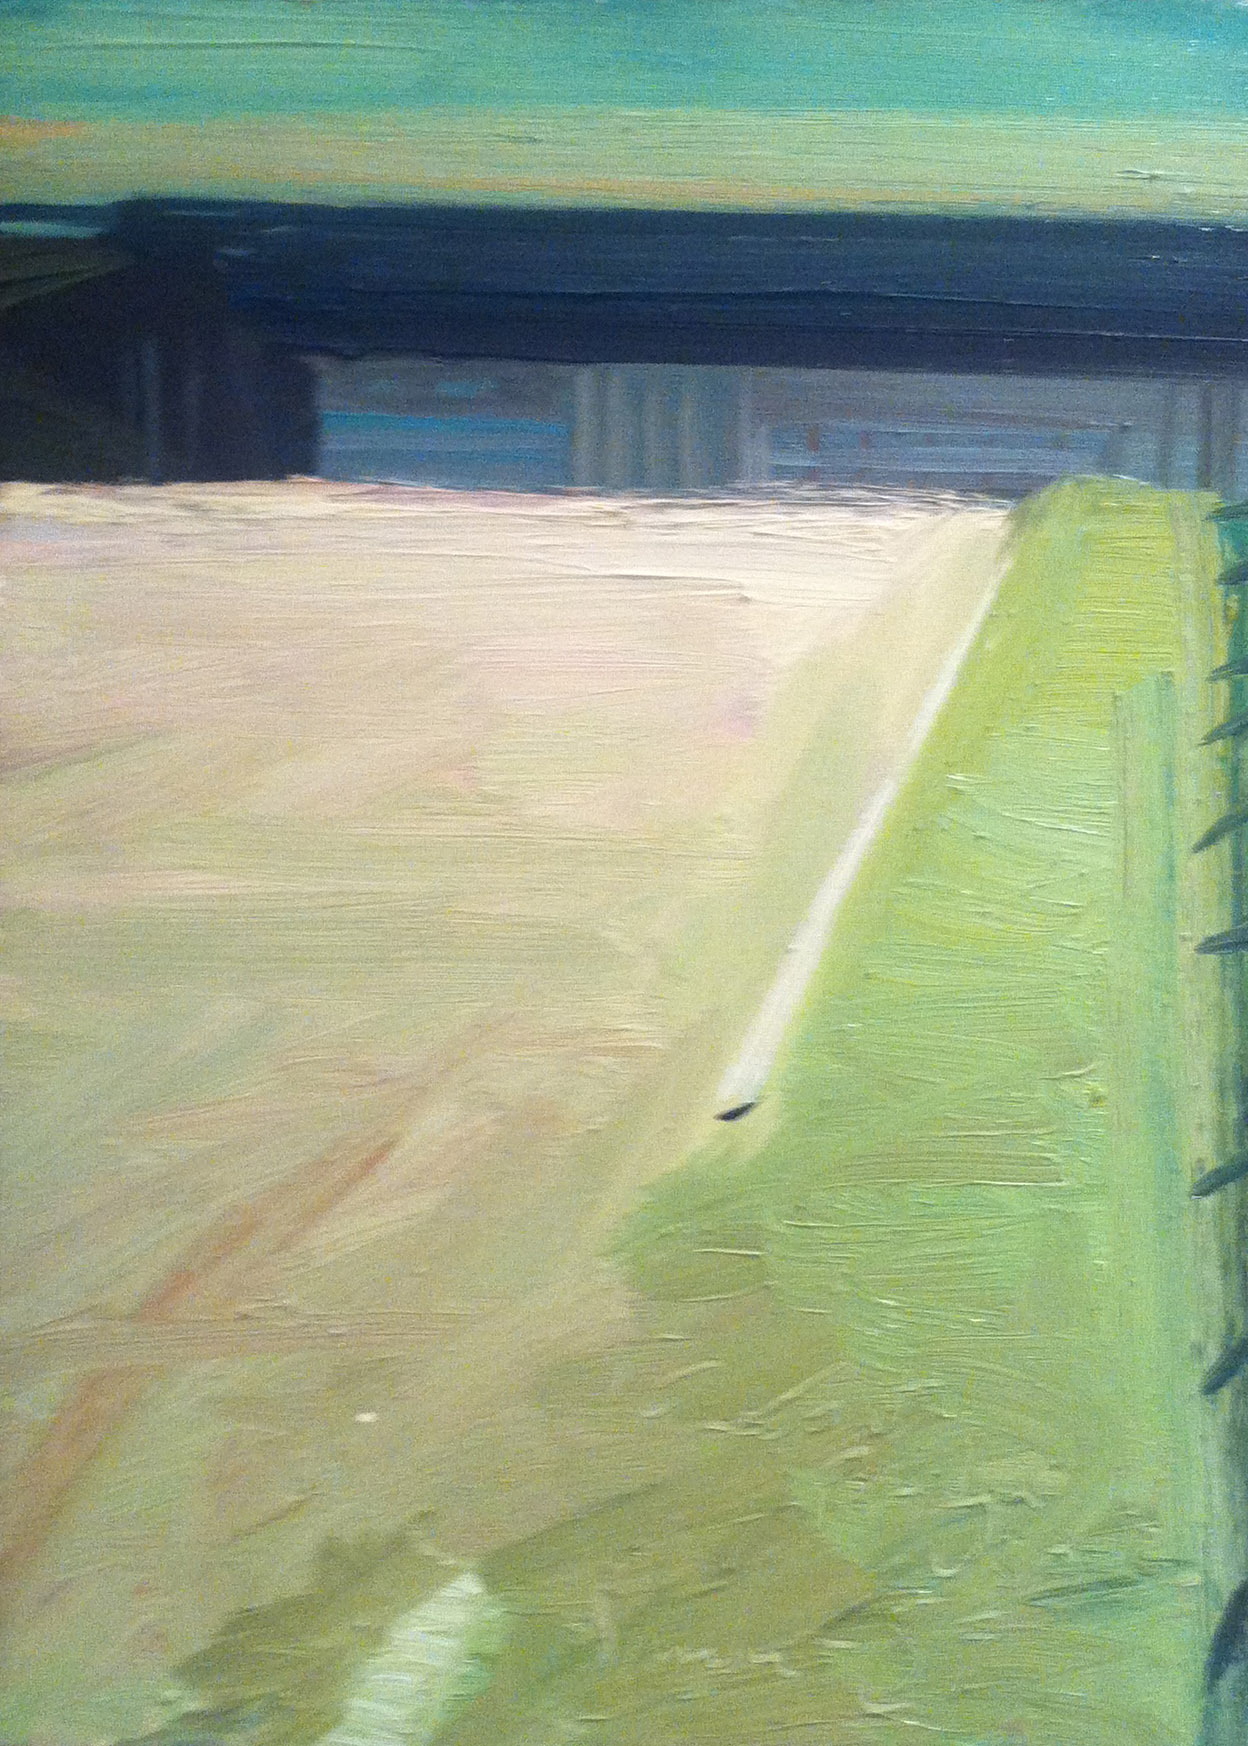 Freeport Bridge, USA,  1989 oil on canvas, 22 x 16 inches